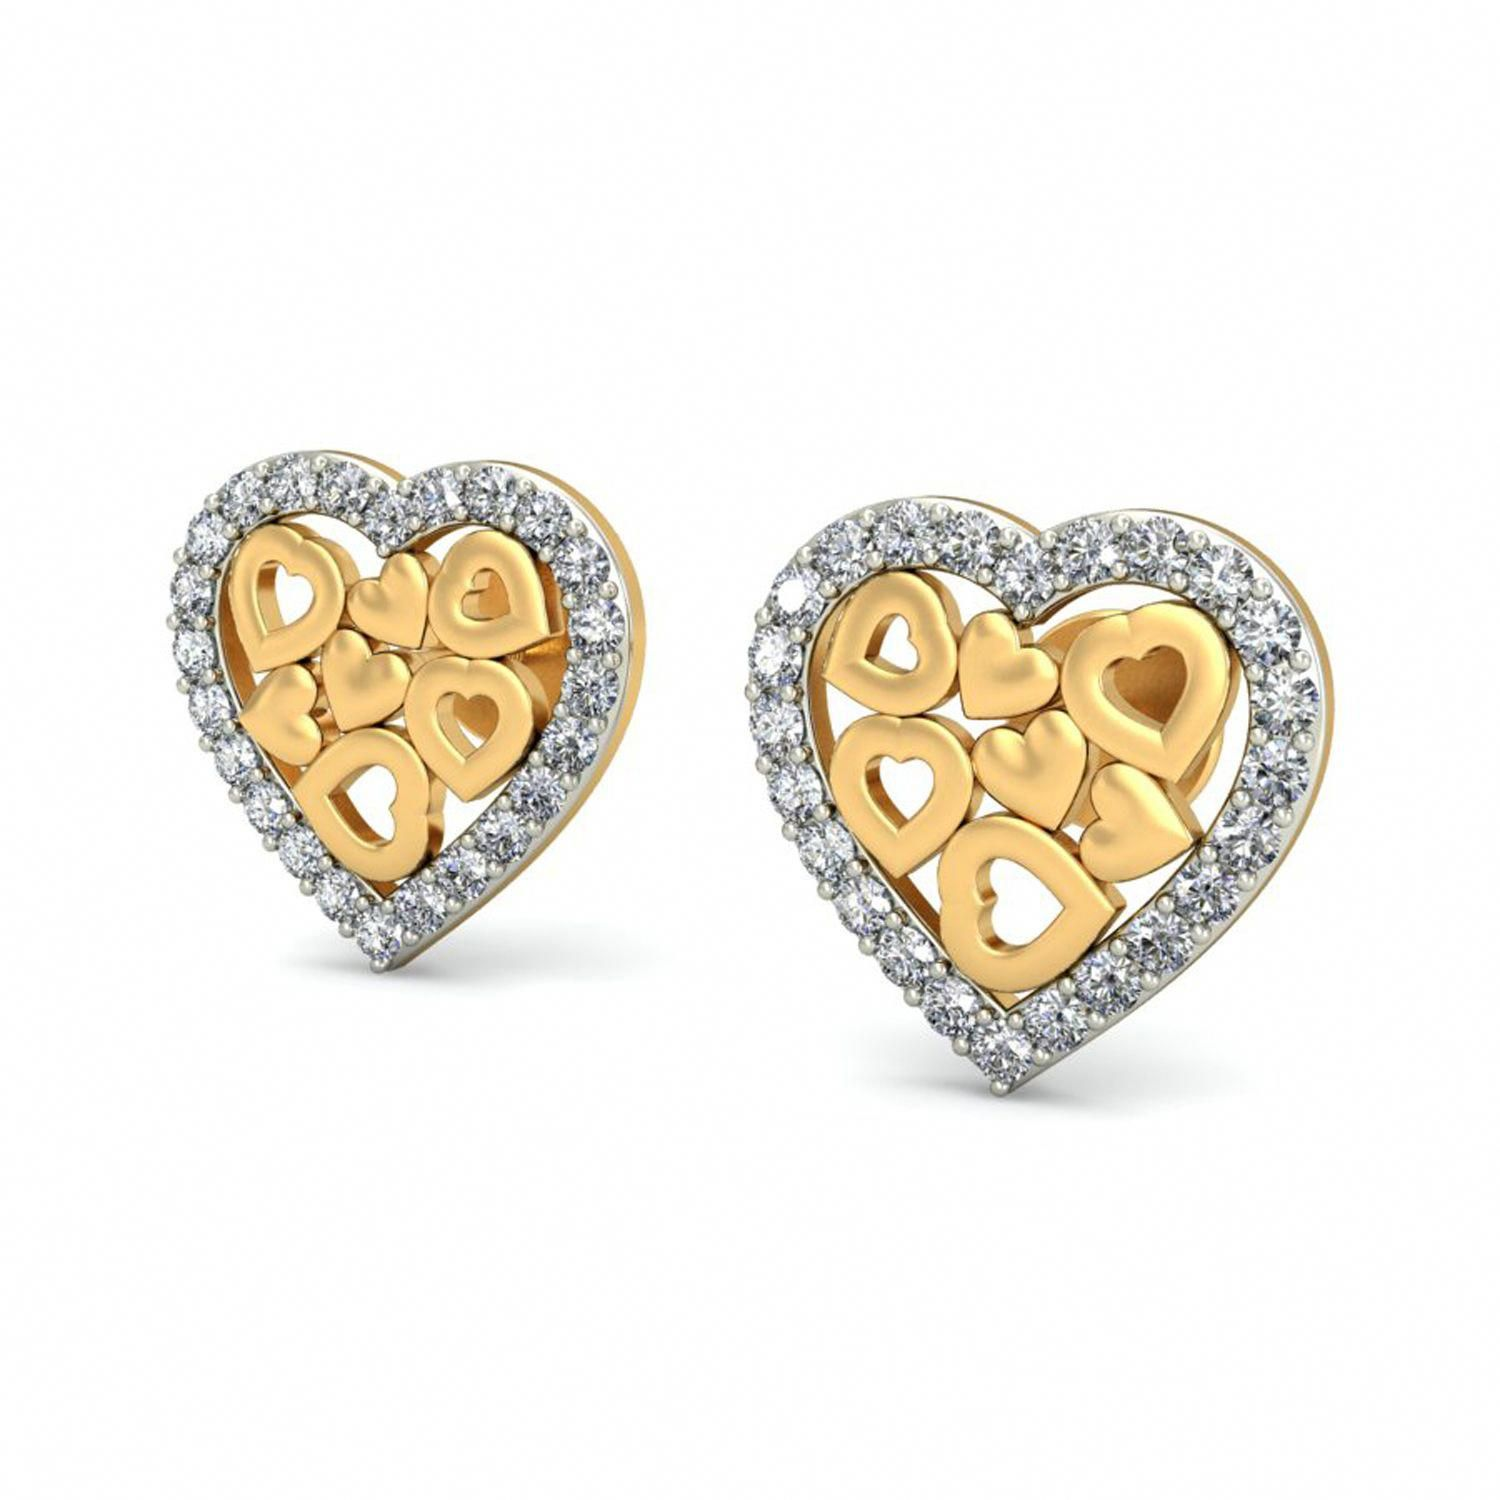 Heart Earrings Real Certified Diamond 0.29 Ct Solid Gold